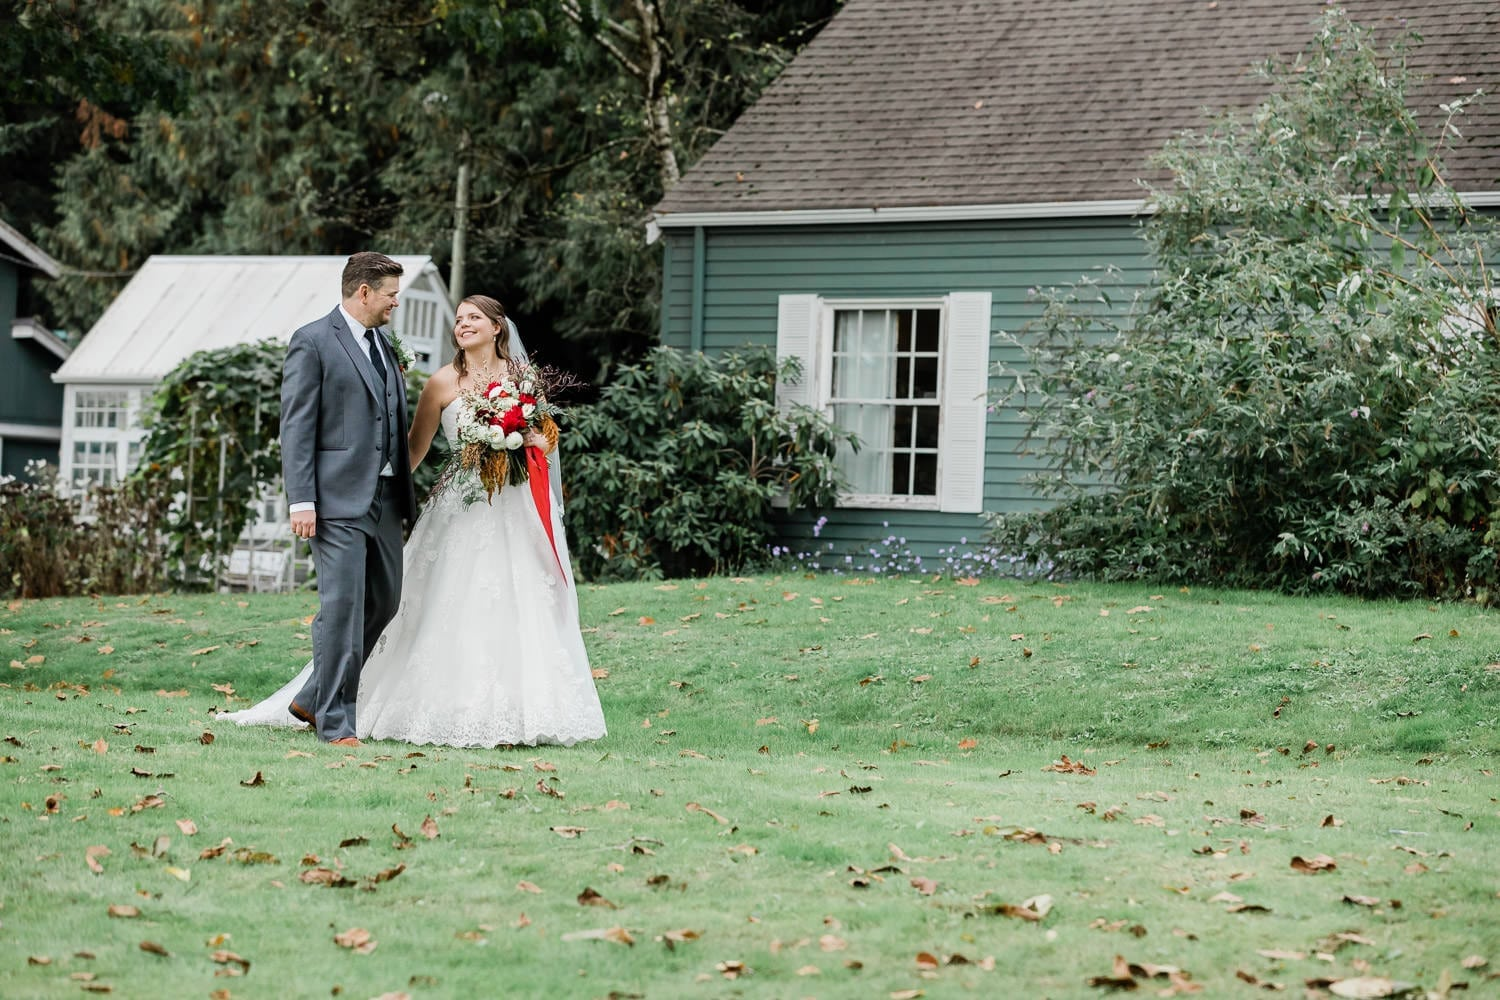 Rustic backyard forest wedding picture with bride and groom | Vancouver wedding photographer